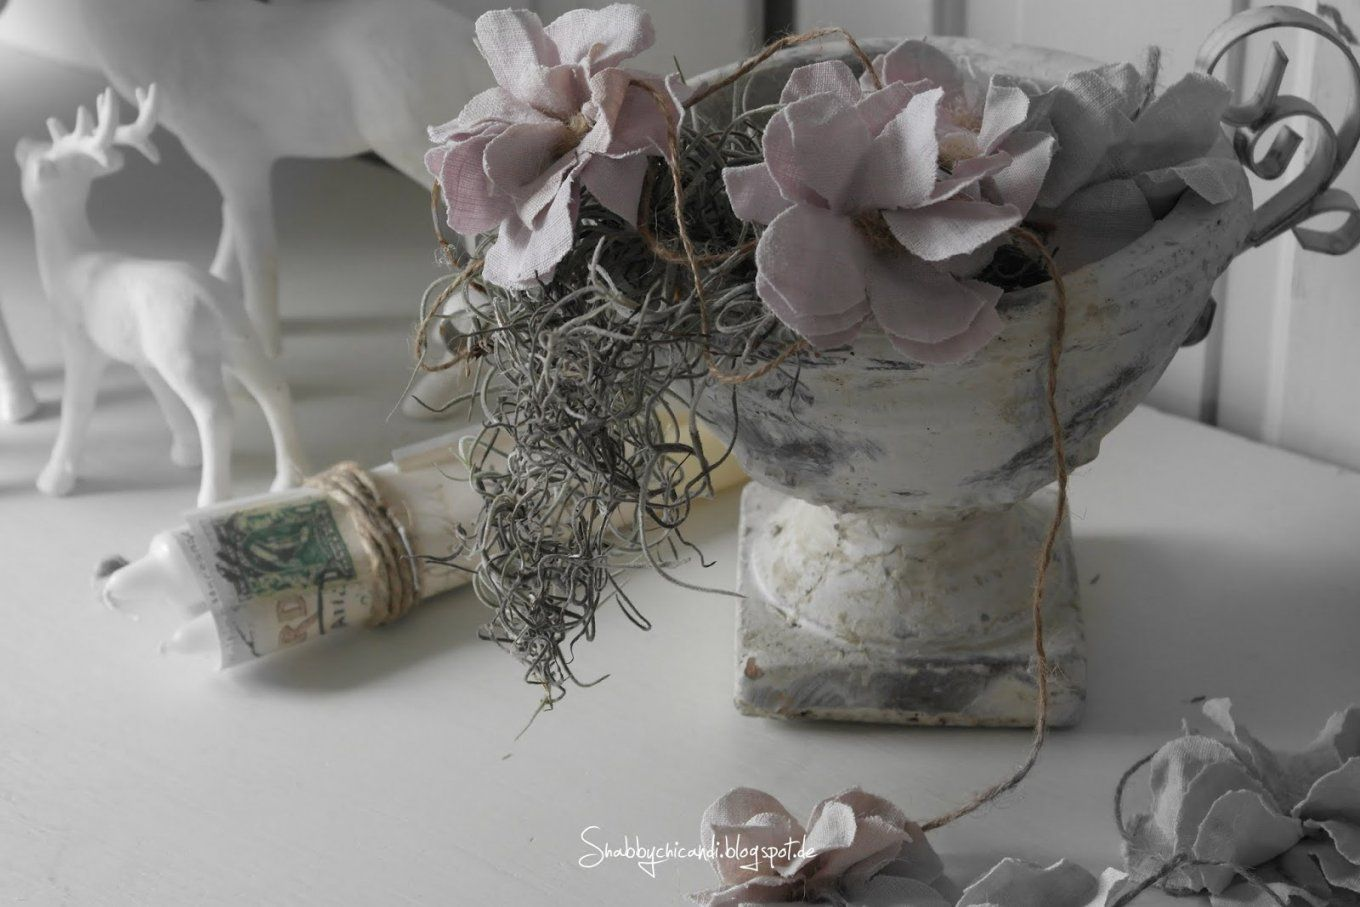 Shabby Chic And I Shabby Chic Diy Und Deko Ein Hauch Von Winter Avec von Shabby Chic Deko Ideen Photo